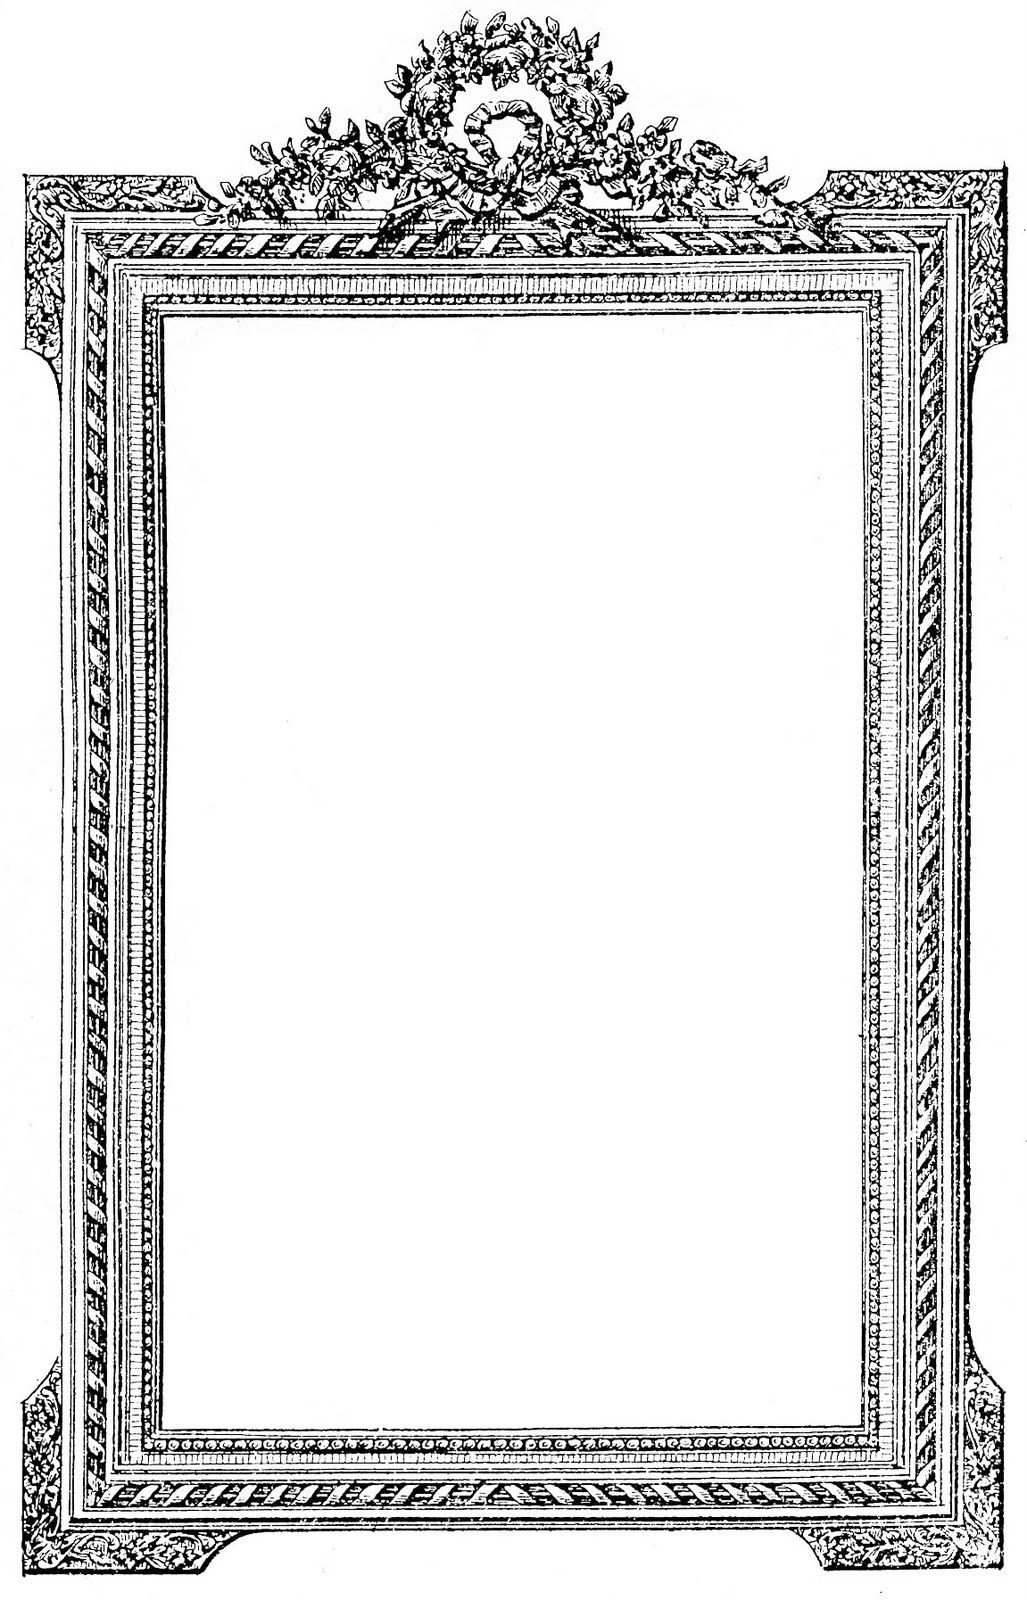 Antique French Picture Frame - Clip Art Image | Clip art, Graphics ...